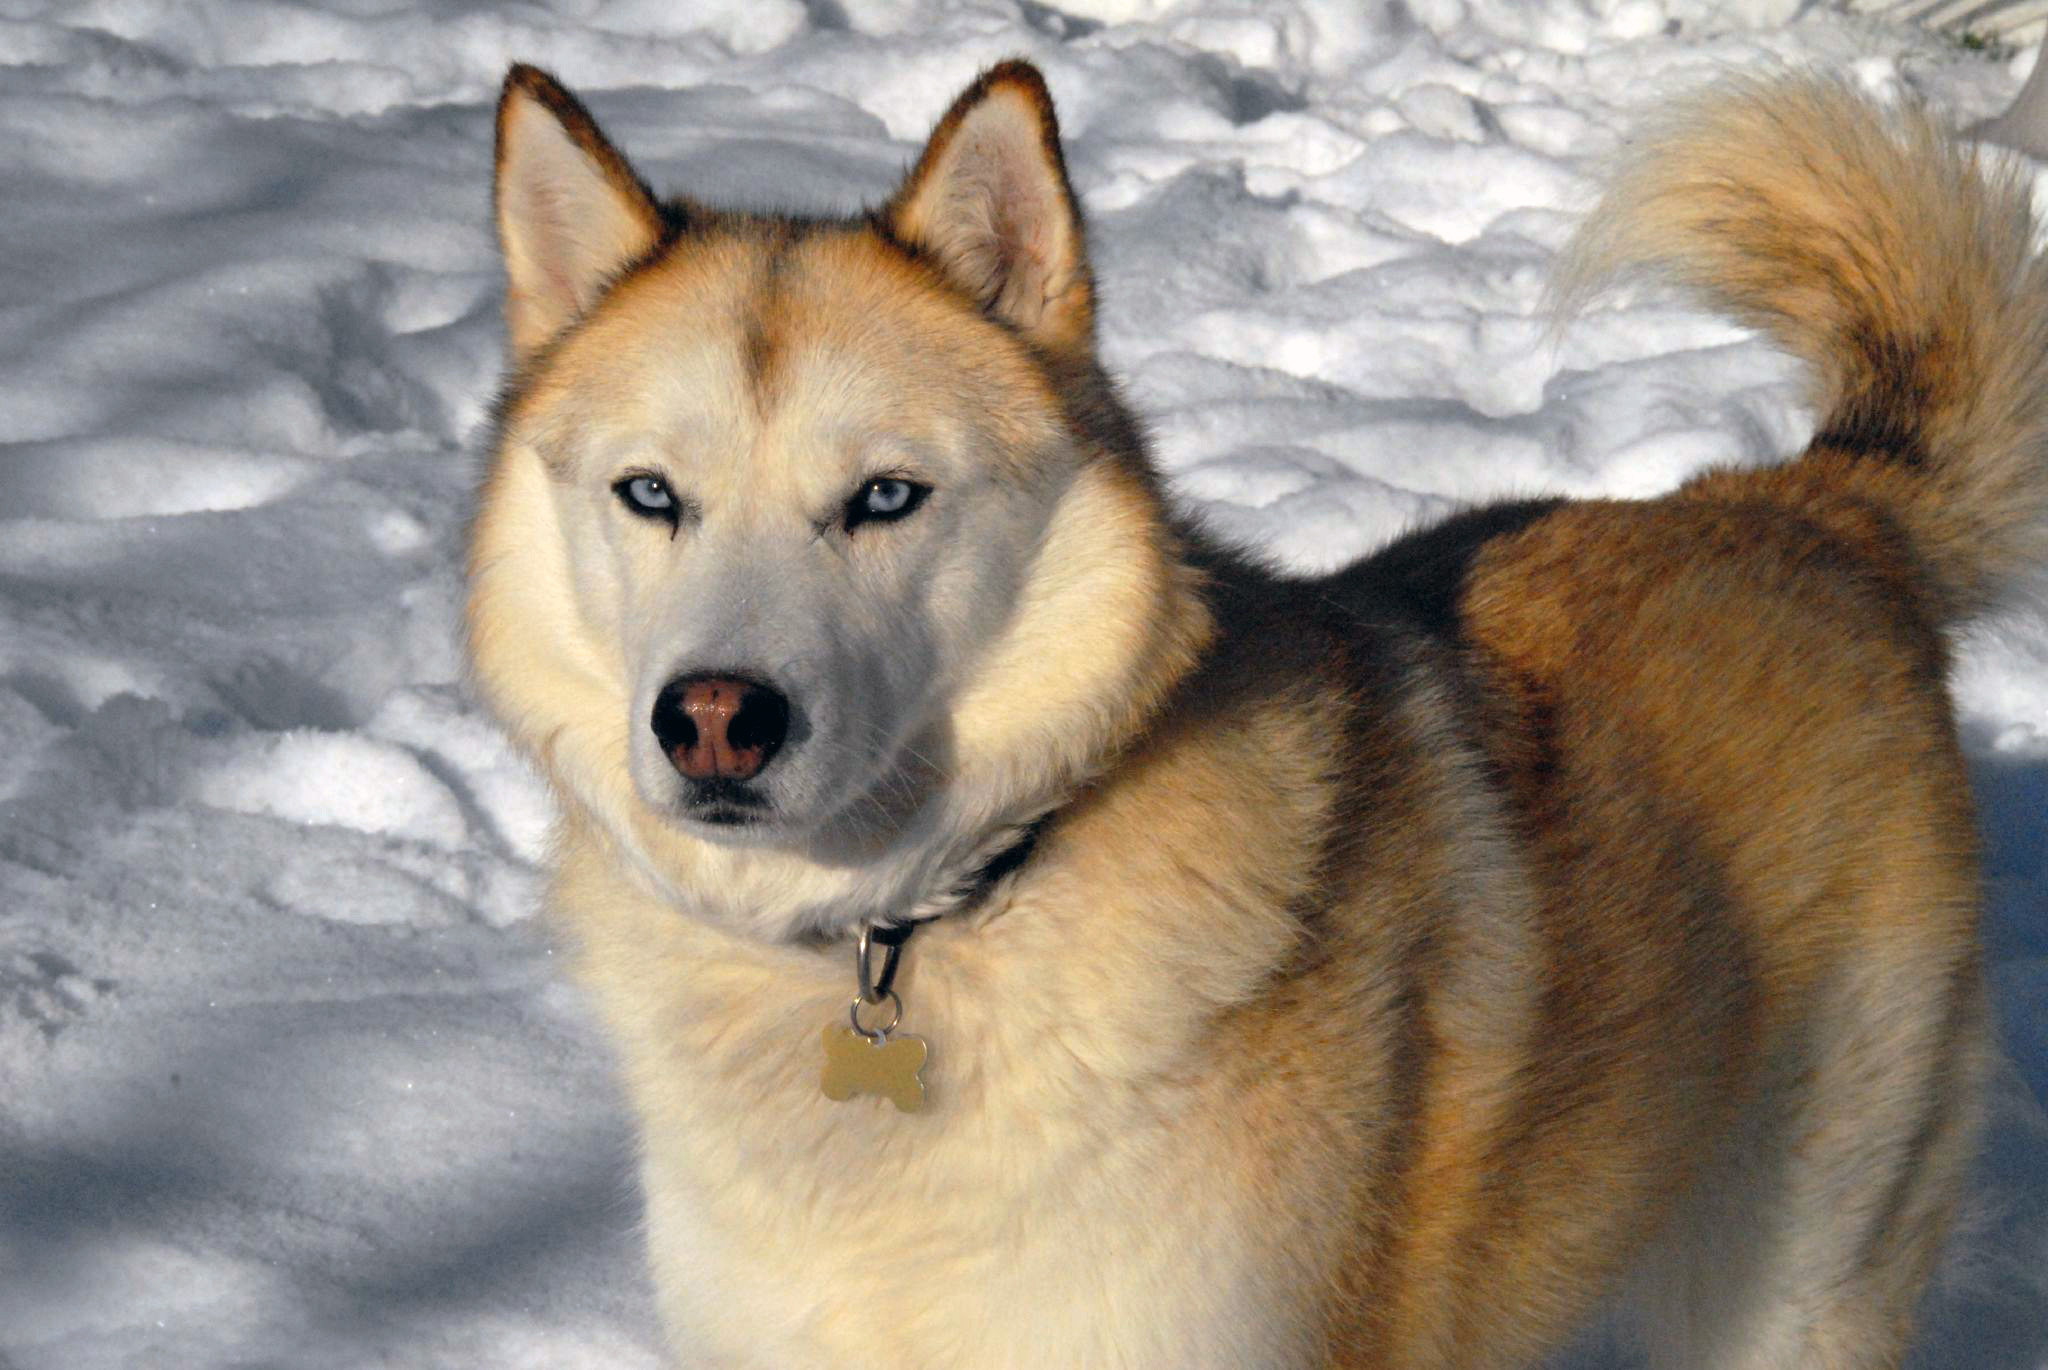 http://www.petwave.com/Dogs/Dog-Breed-Center/Working-Group/Siberian-Husky/Overview.aspx